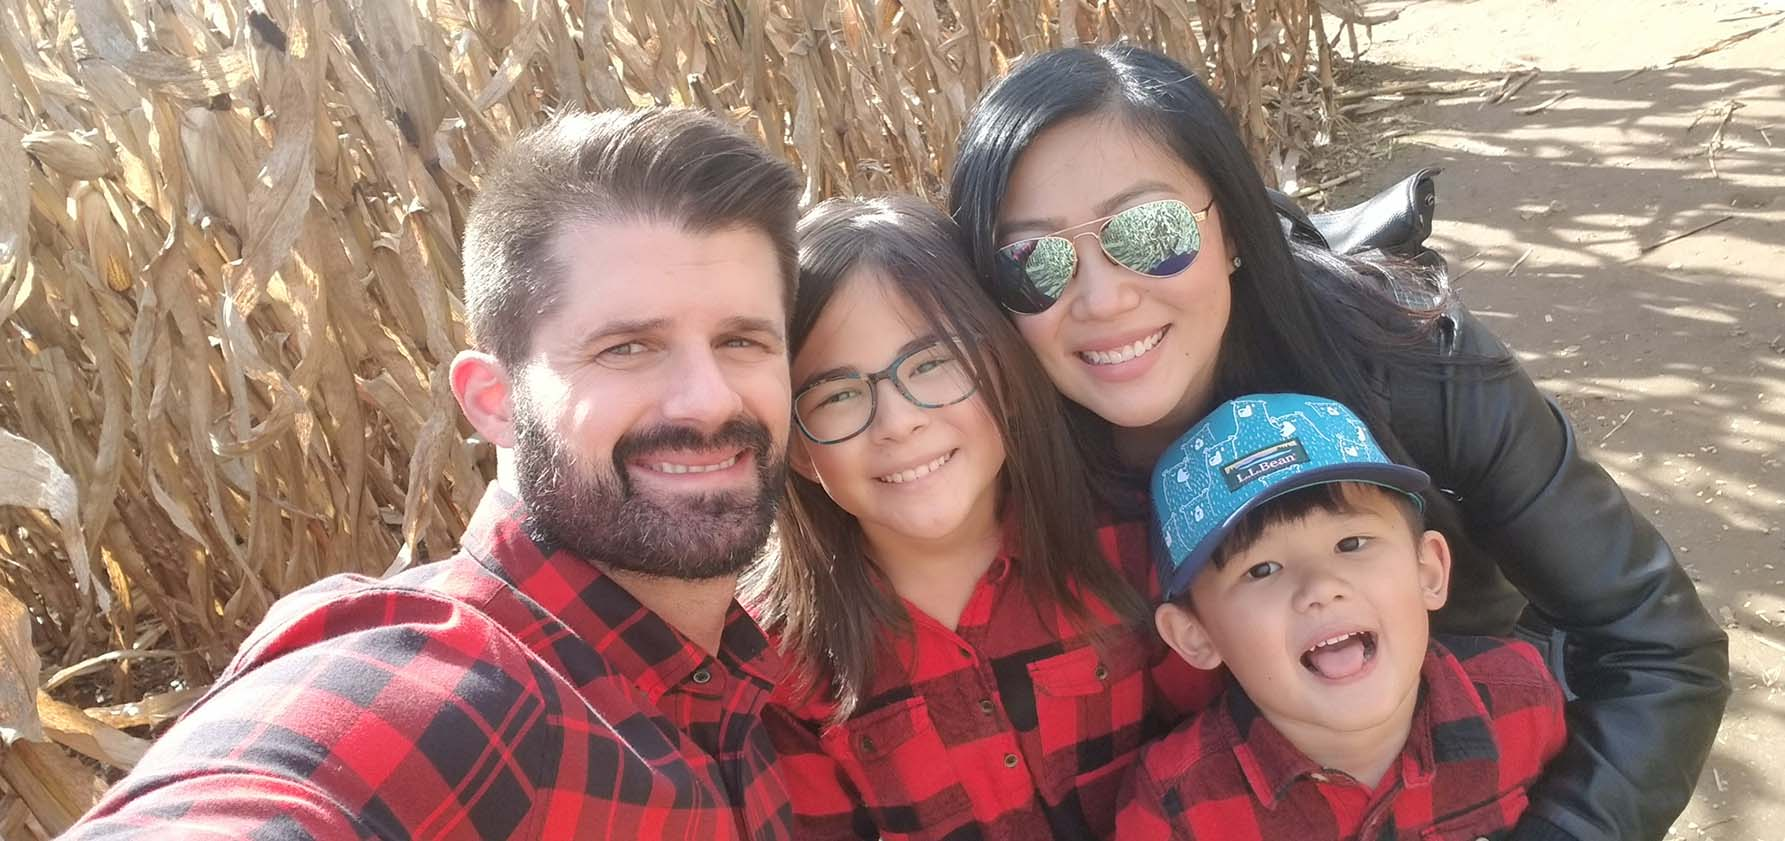 Jessica Weaver with her husband, daughter, and son having fun at a cornfield in fall.